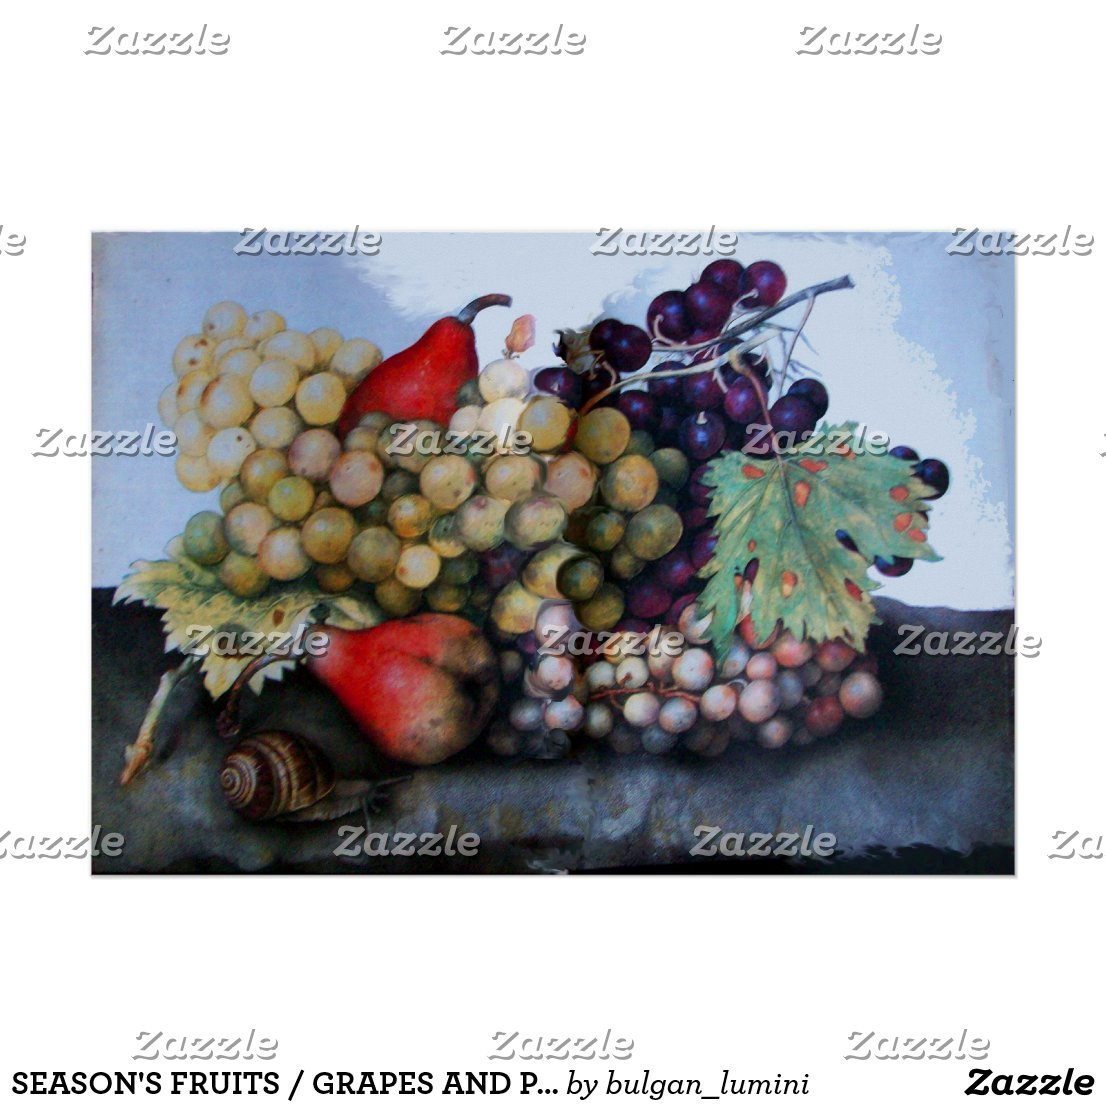 SEASON'S FRUITS / GRAPES AND PEARS POSTER